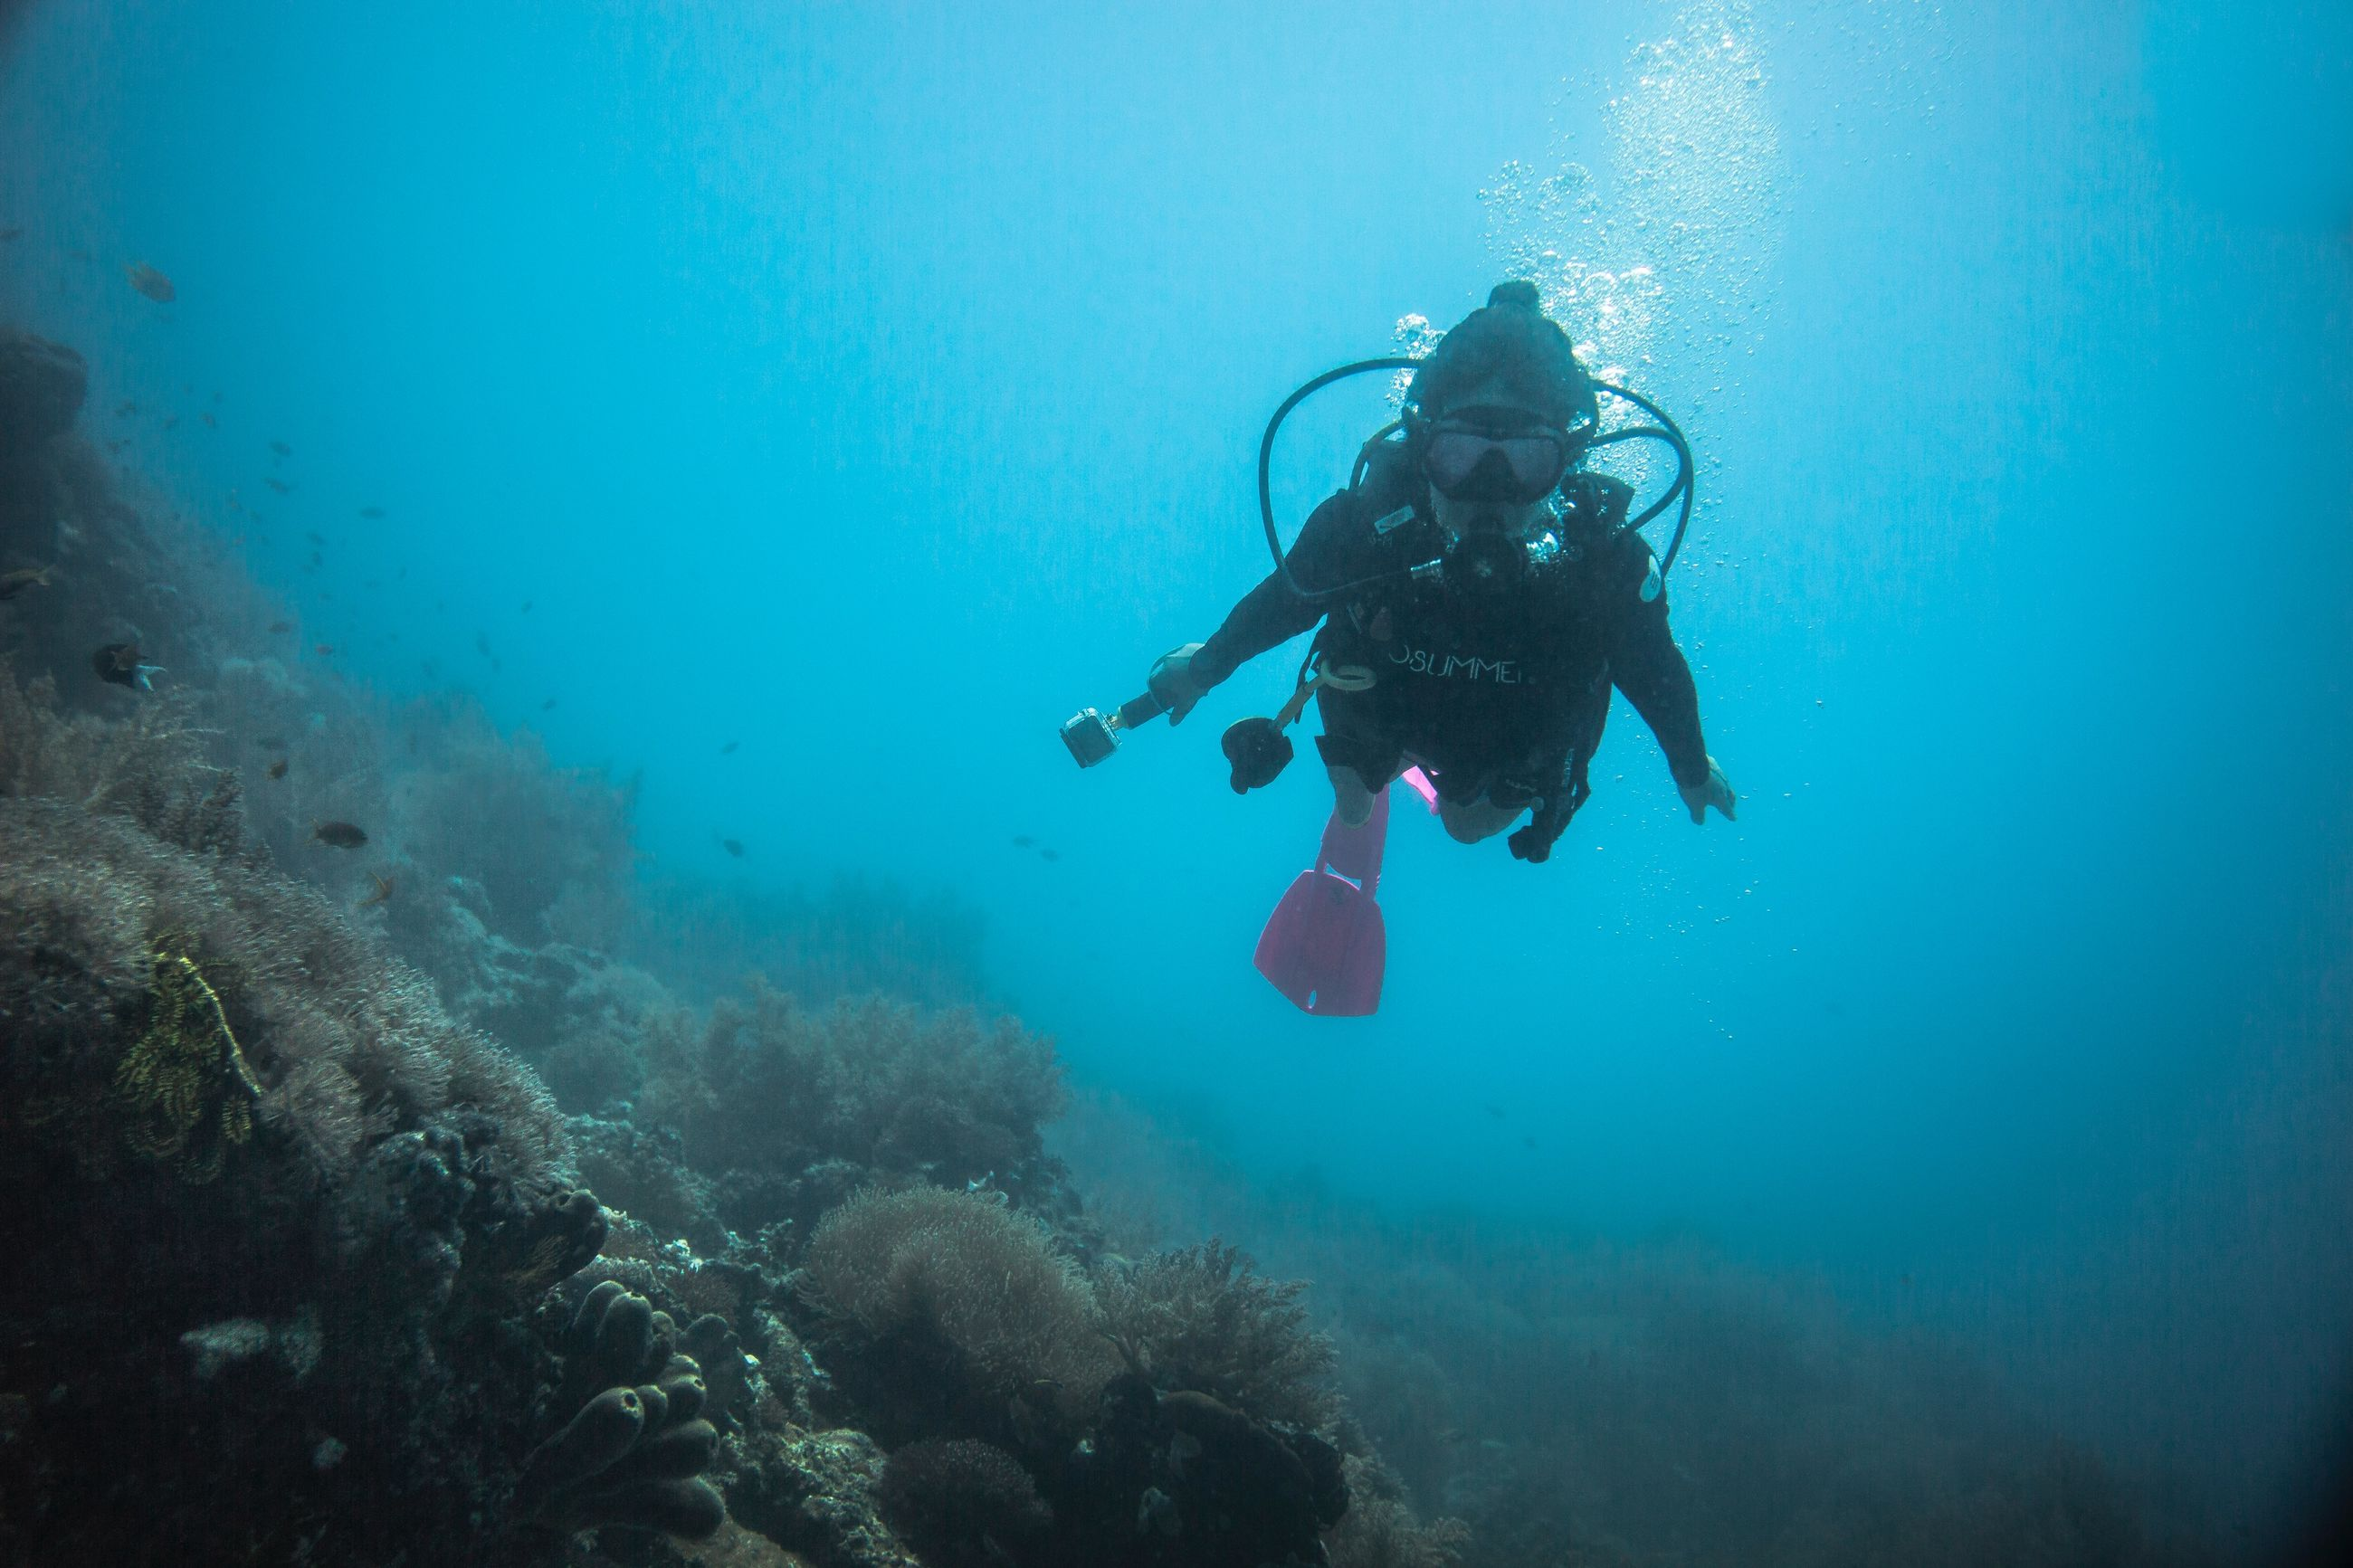 underwater, undersea, sea, water, swimming, aquatic sport, adventure, scuba diving, exploration, nature, sport, one person, diving equipment, unrecognizable person, sea life, real people, animal, blue, coral, outdoors, marine, underwater diving